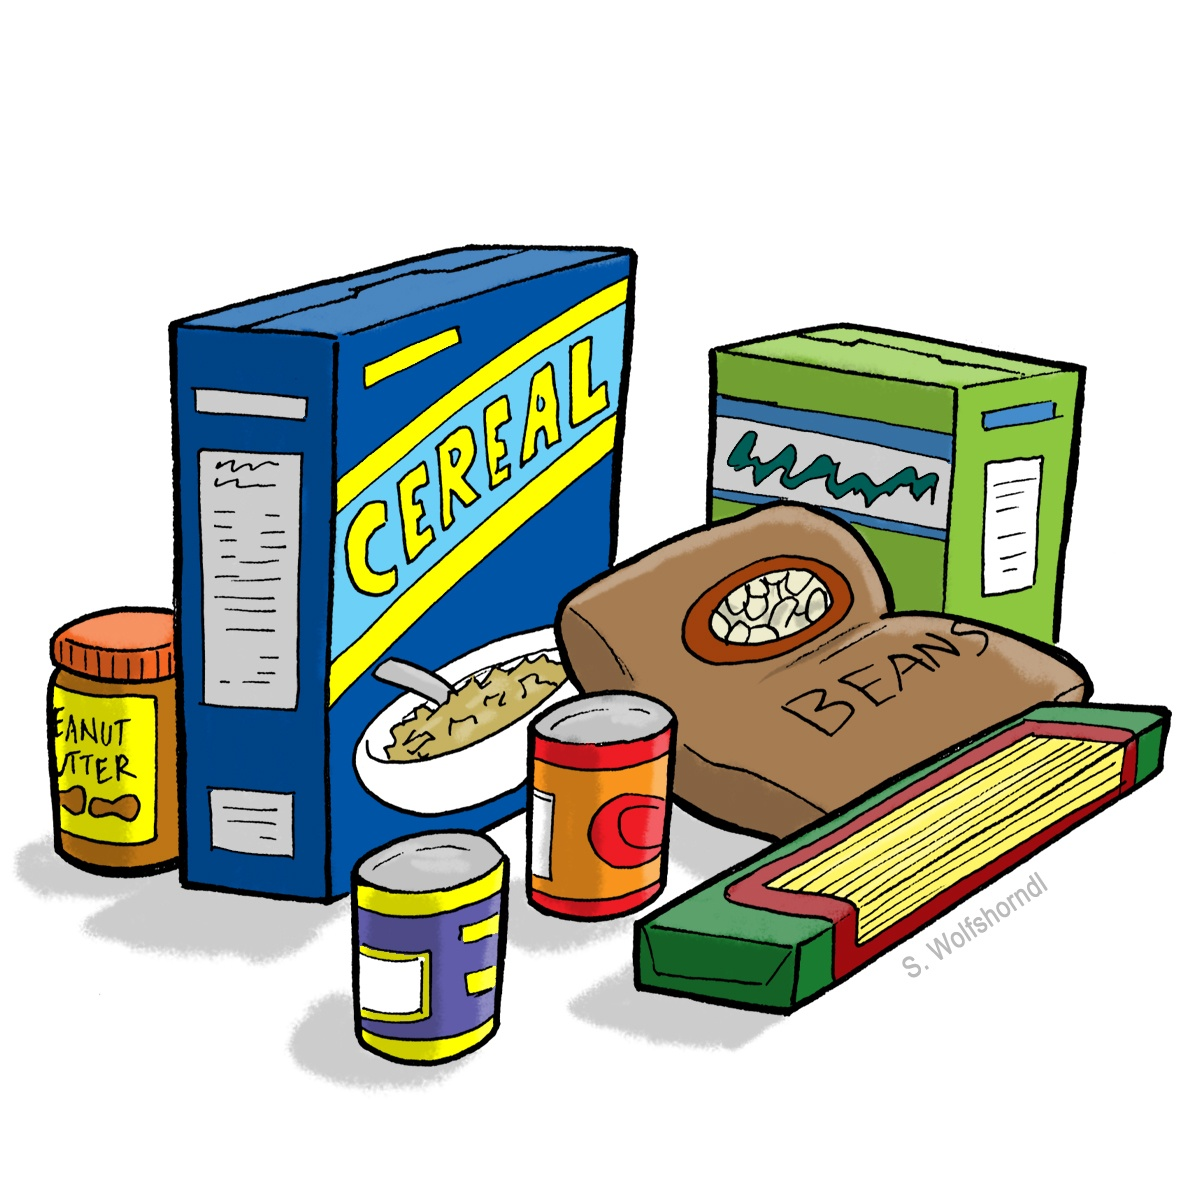 pantry clipart-pantry clipart-13